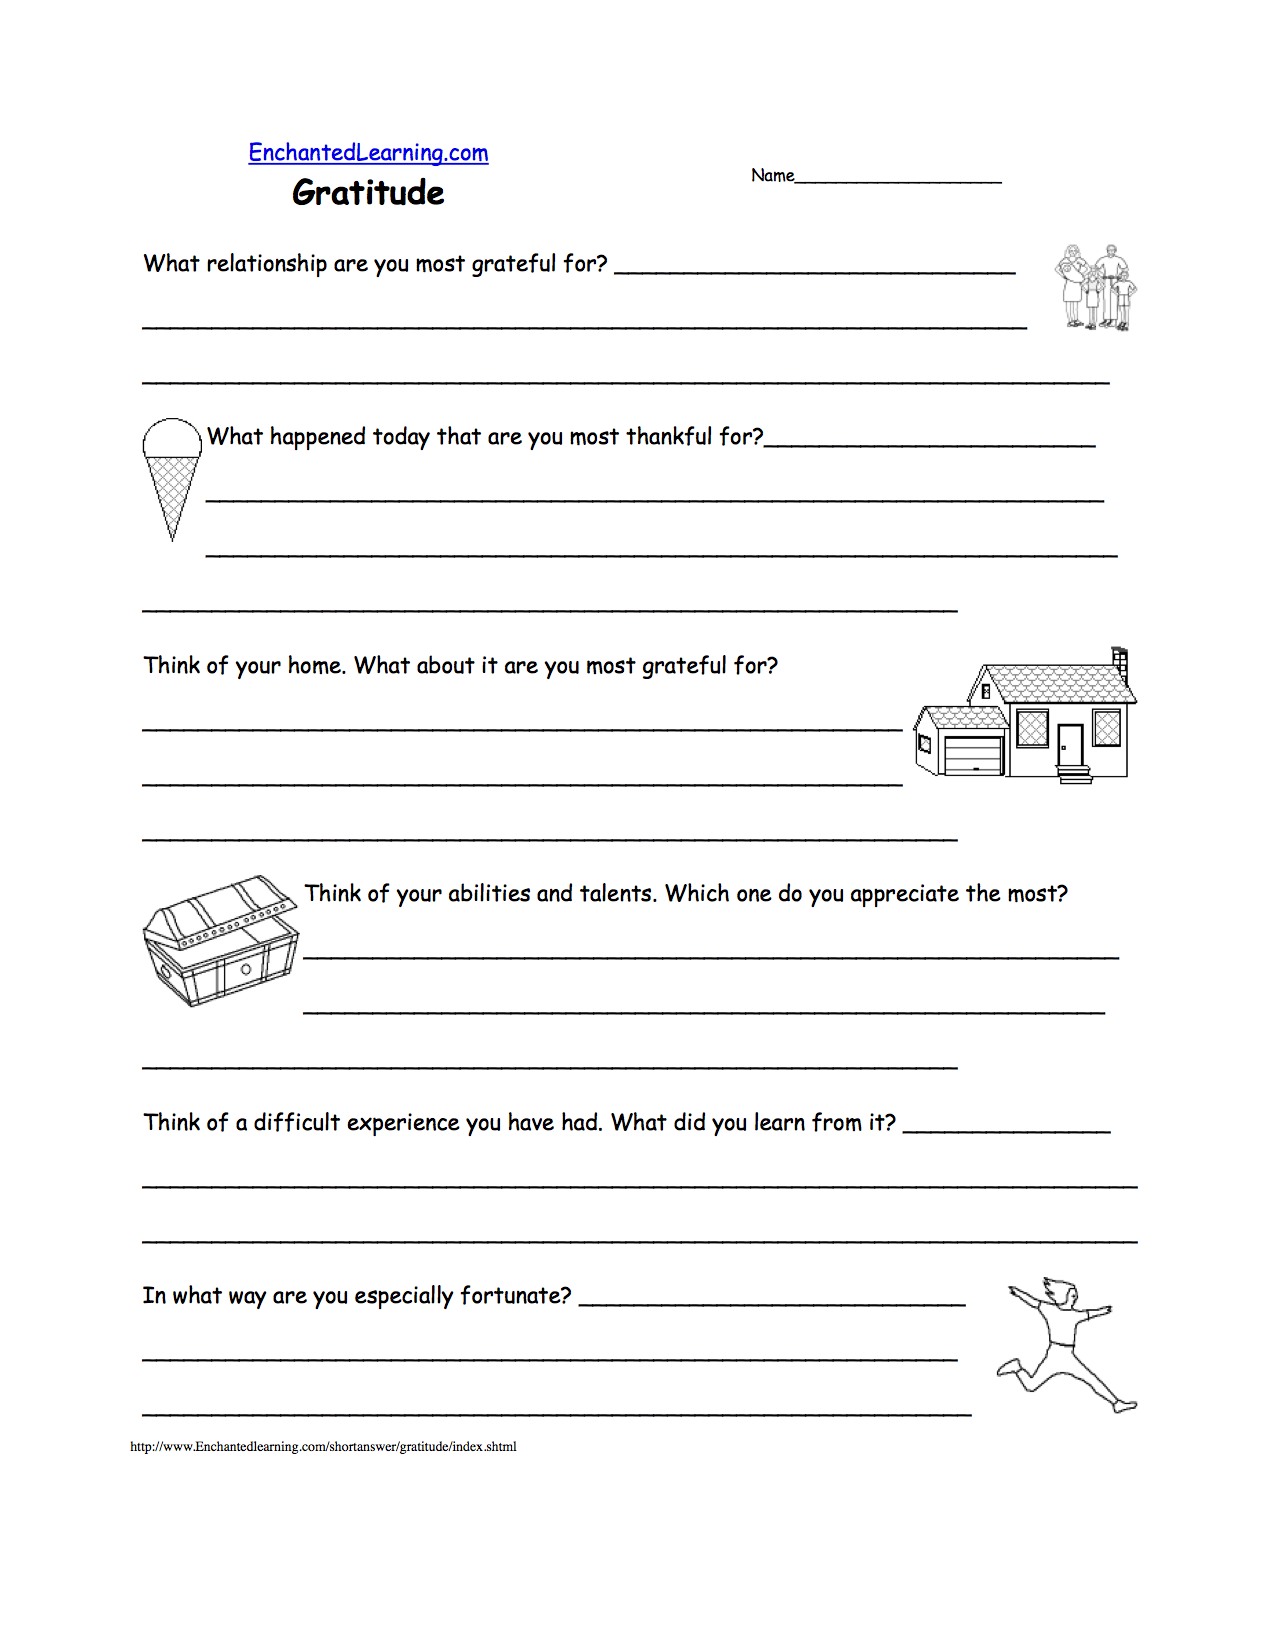 worksheet Hungry Angry Lonely Tired Worksheet feelings and emotions at enchantedlearning com thanksgiving